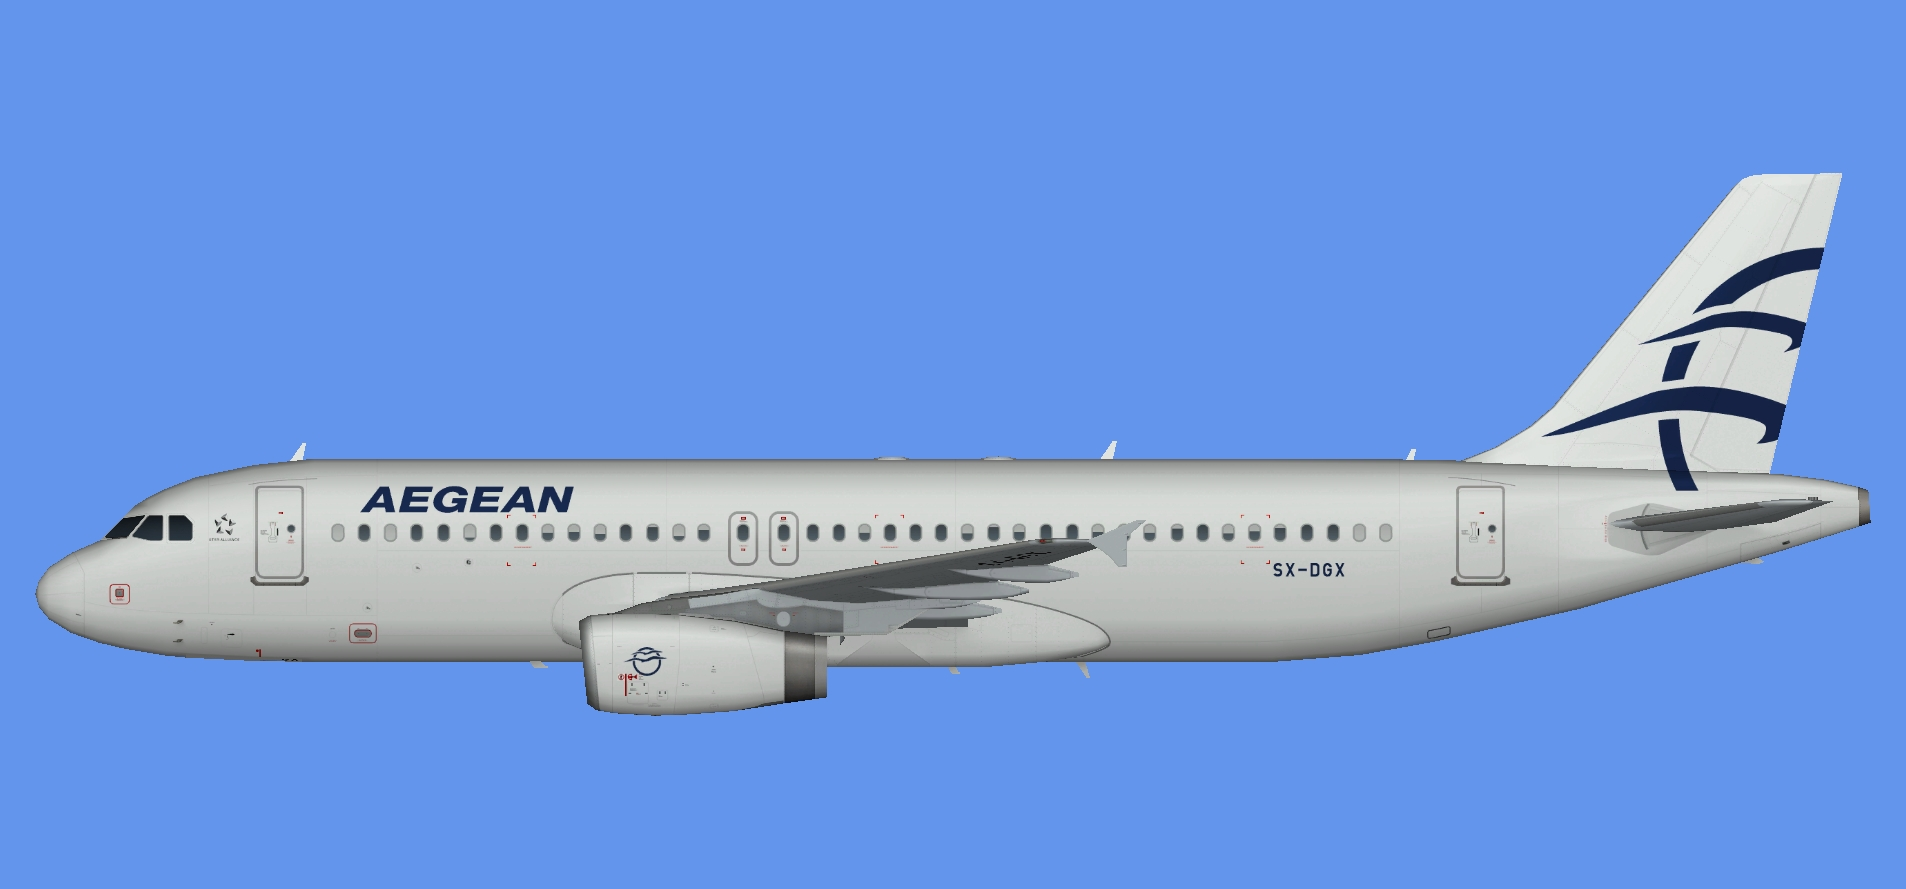 Aegean Airlines A320 (white belly)